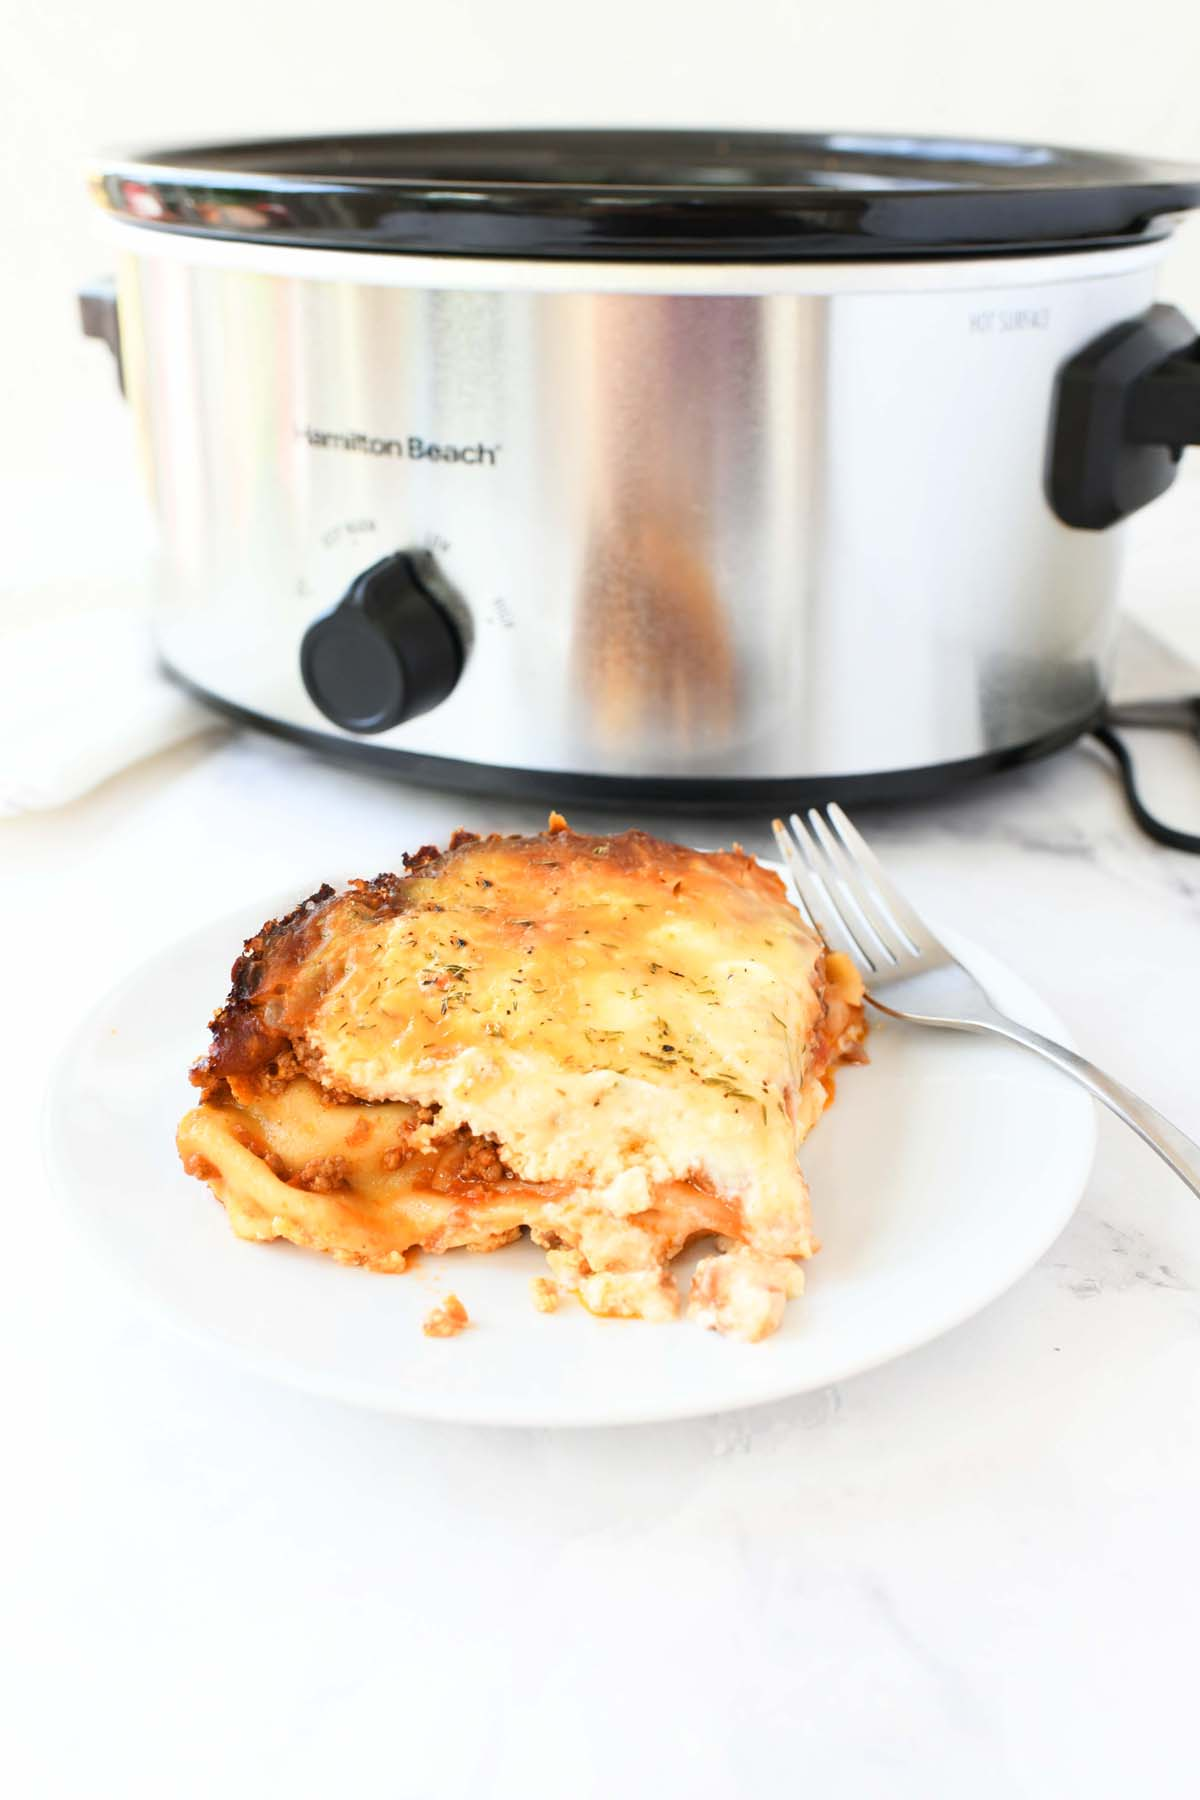 A slice of slow cooker lasagna on a white plate.